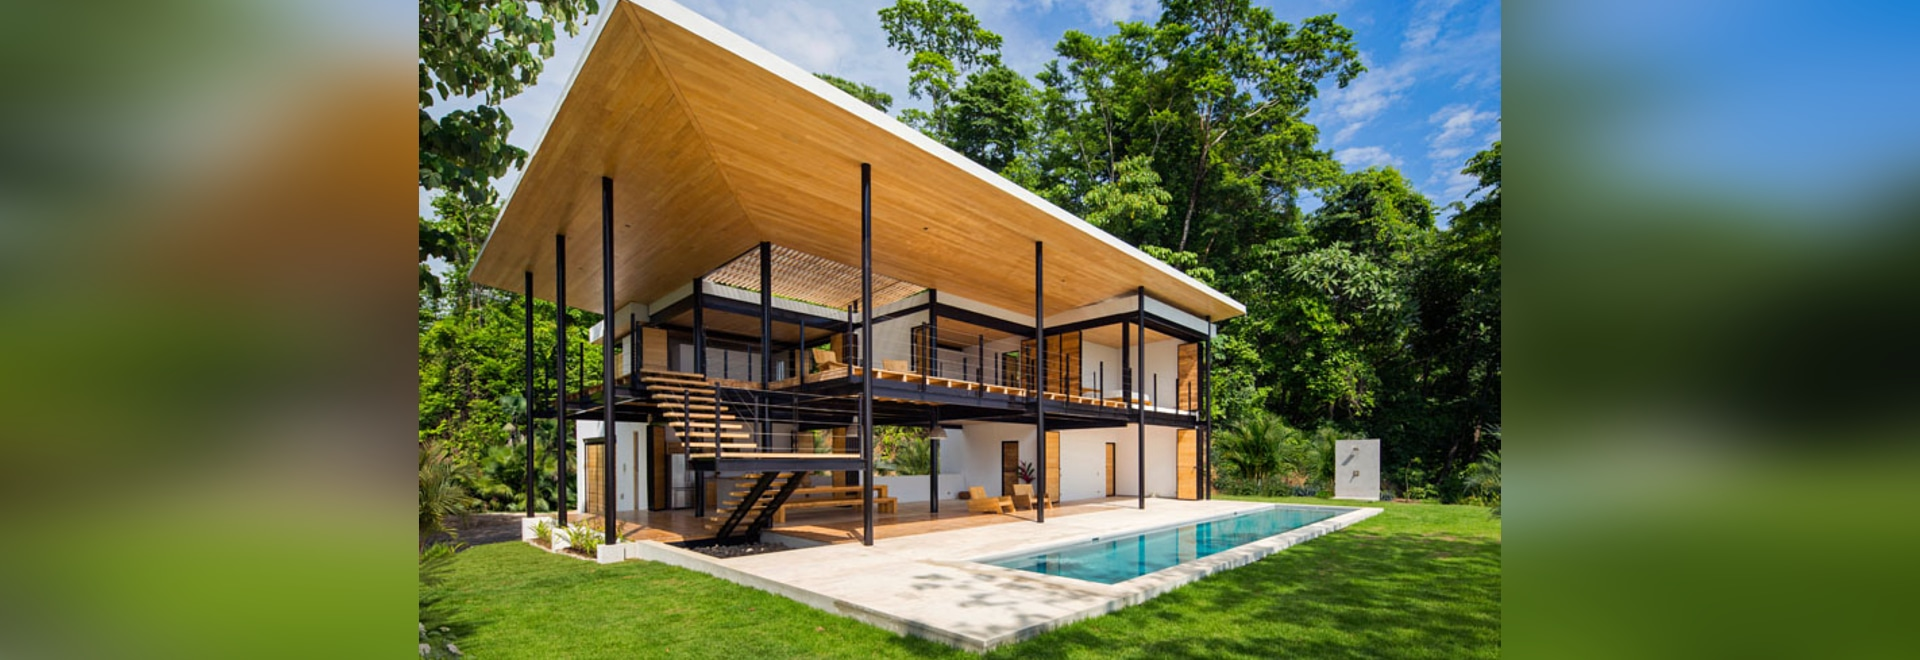 This Tropical House Is Almost Completely Open To The Outside